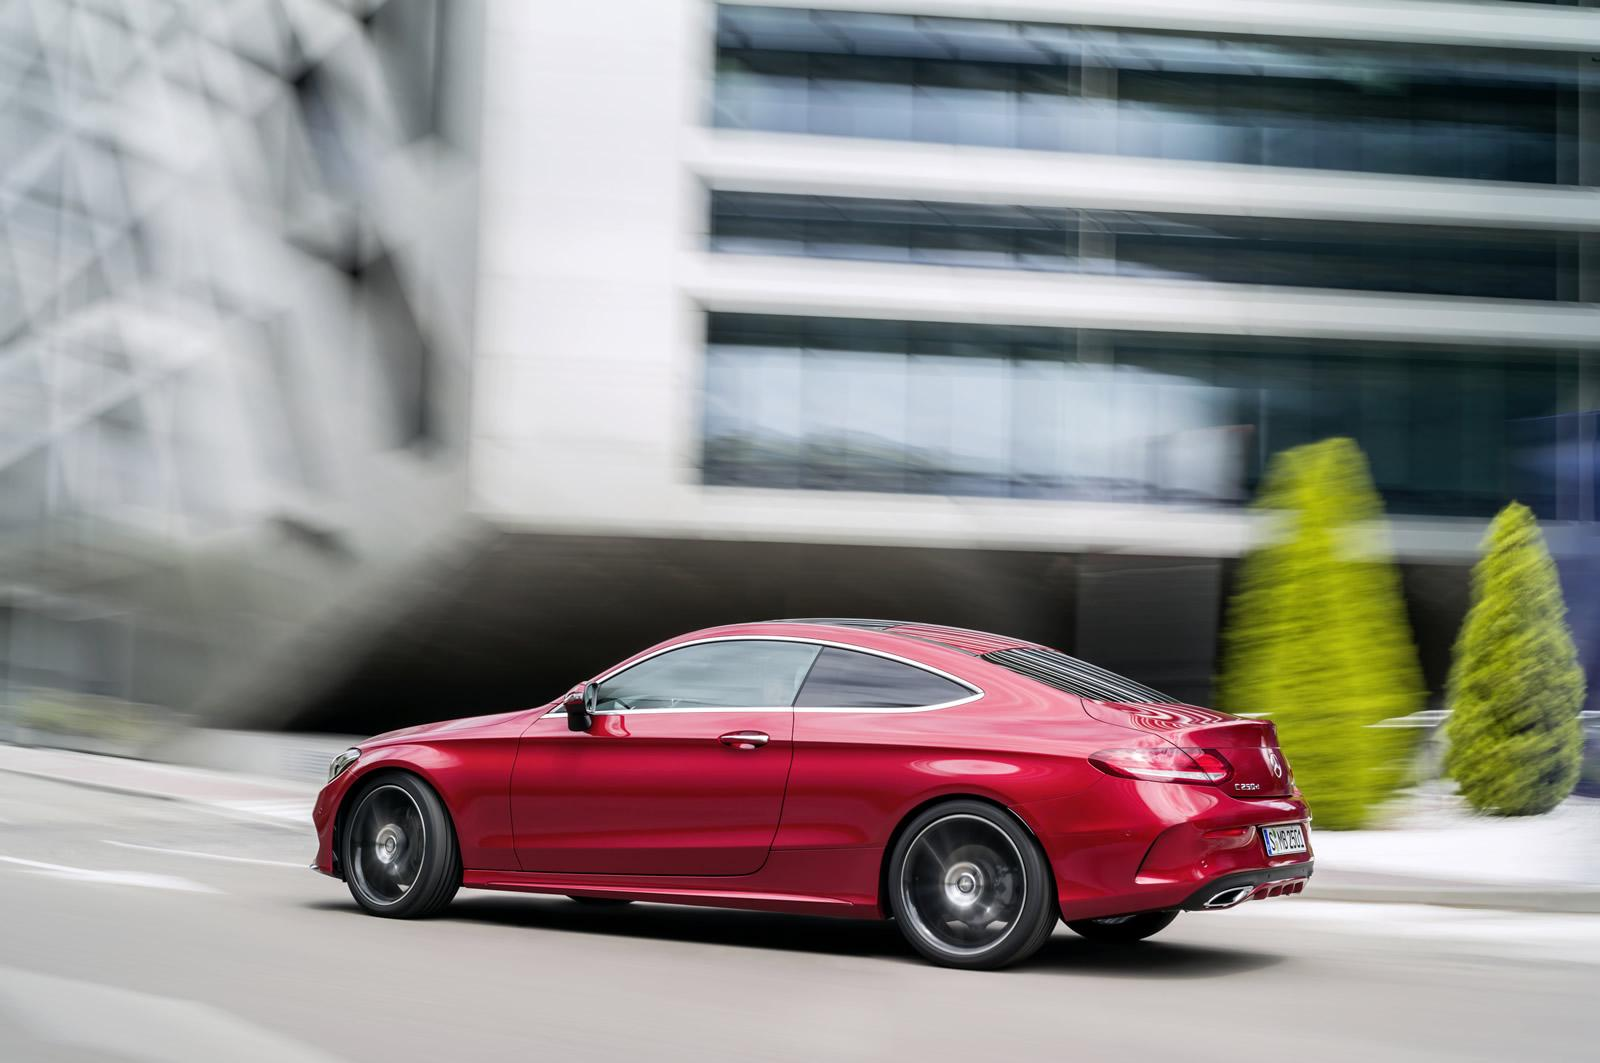 Mercedes Classe C Coup Ef Bf Bd  Amg Black Serie Chevaux